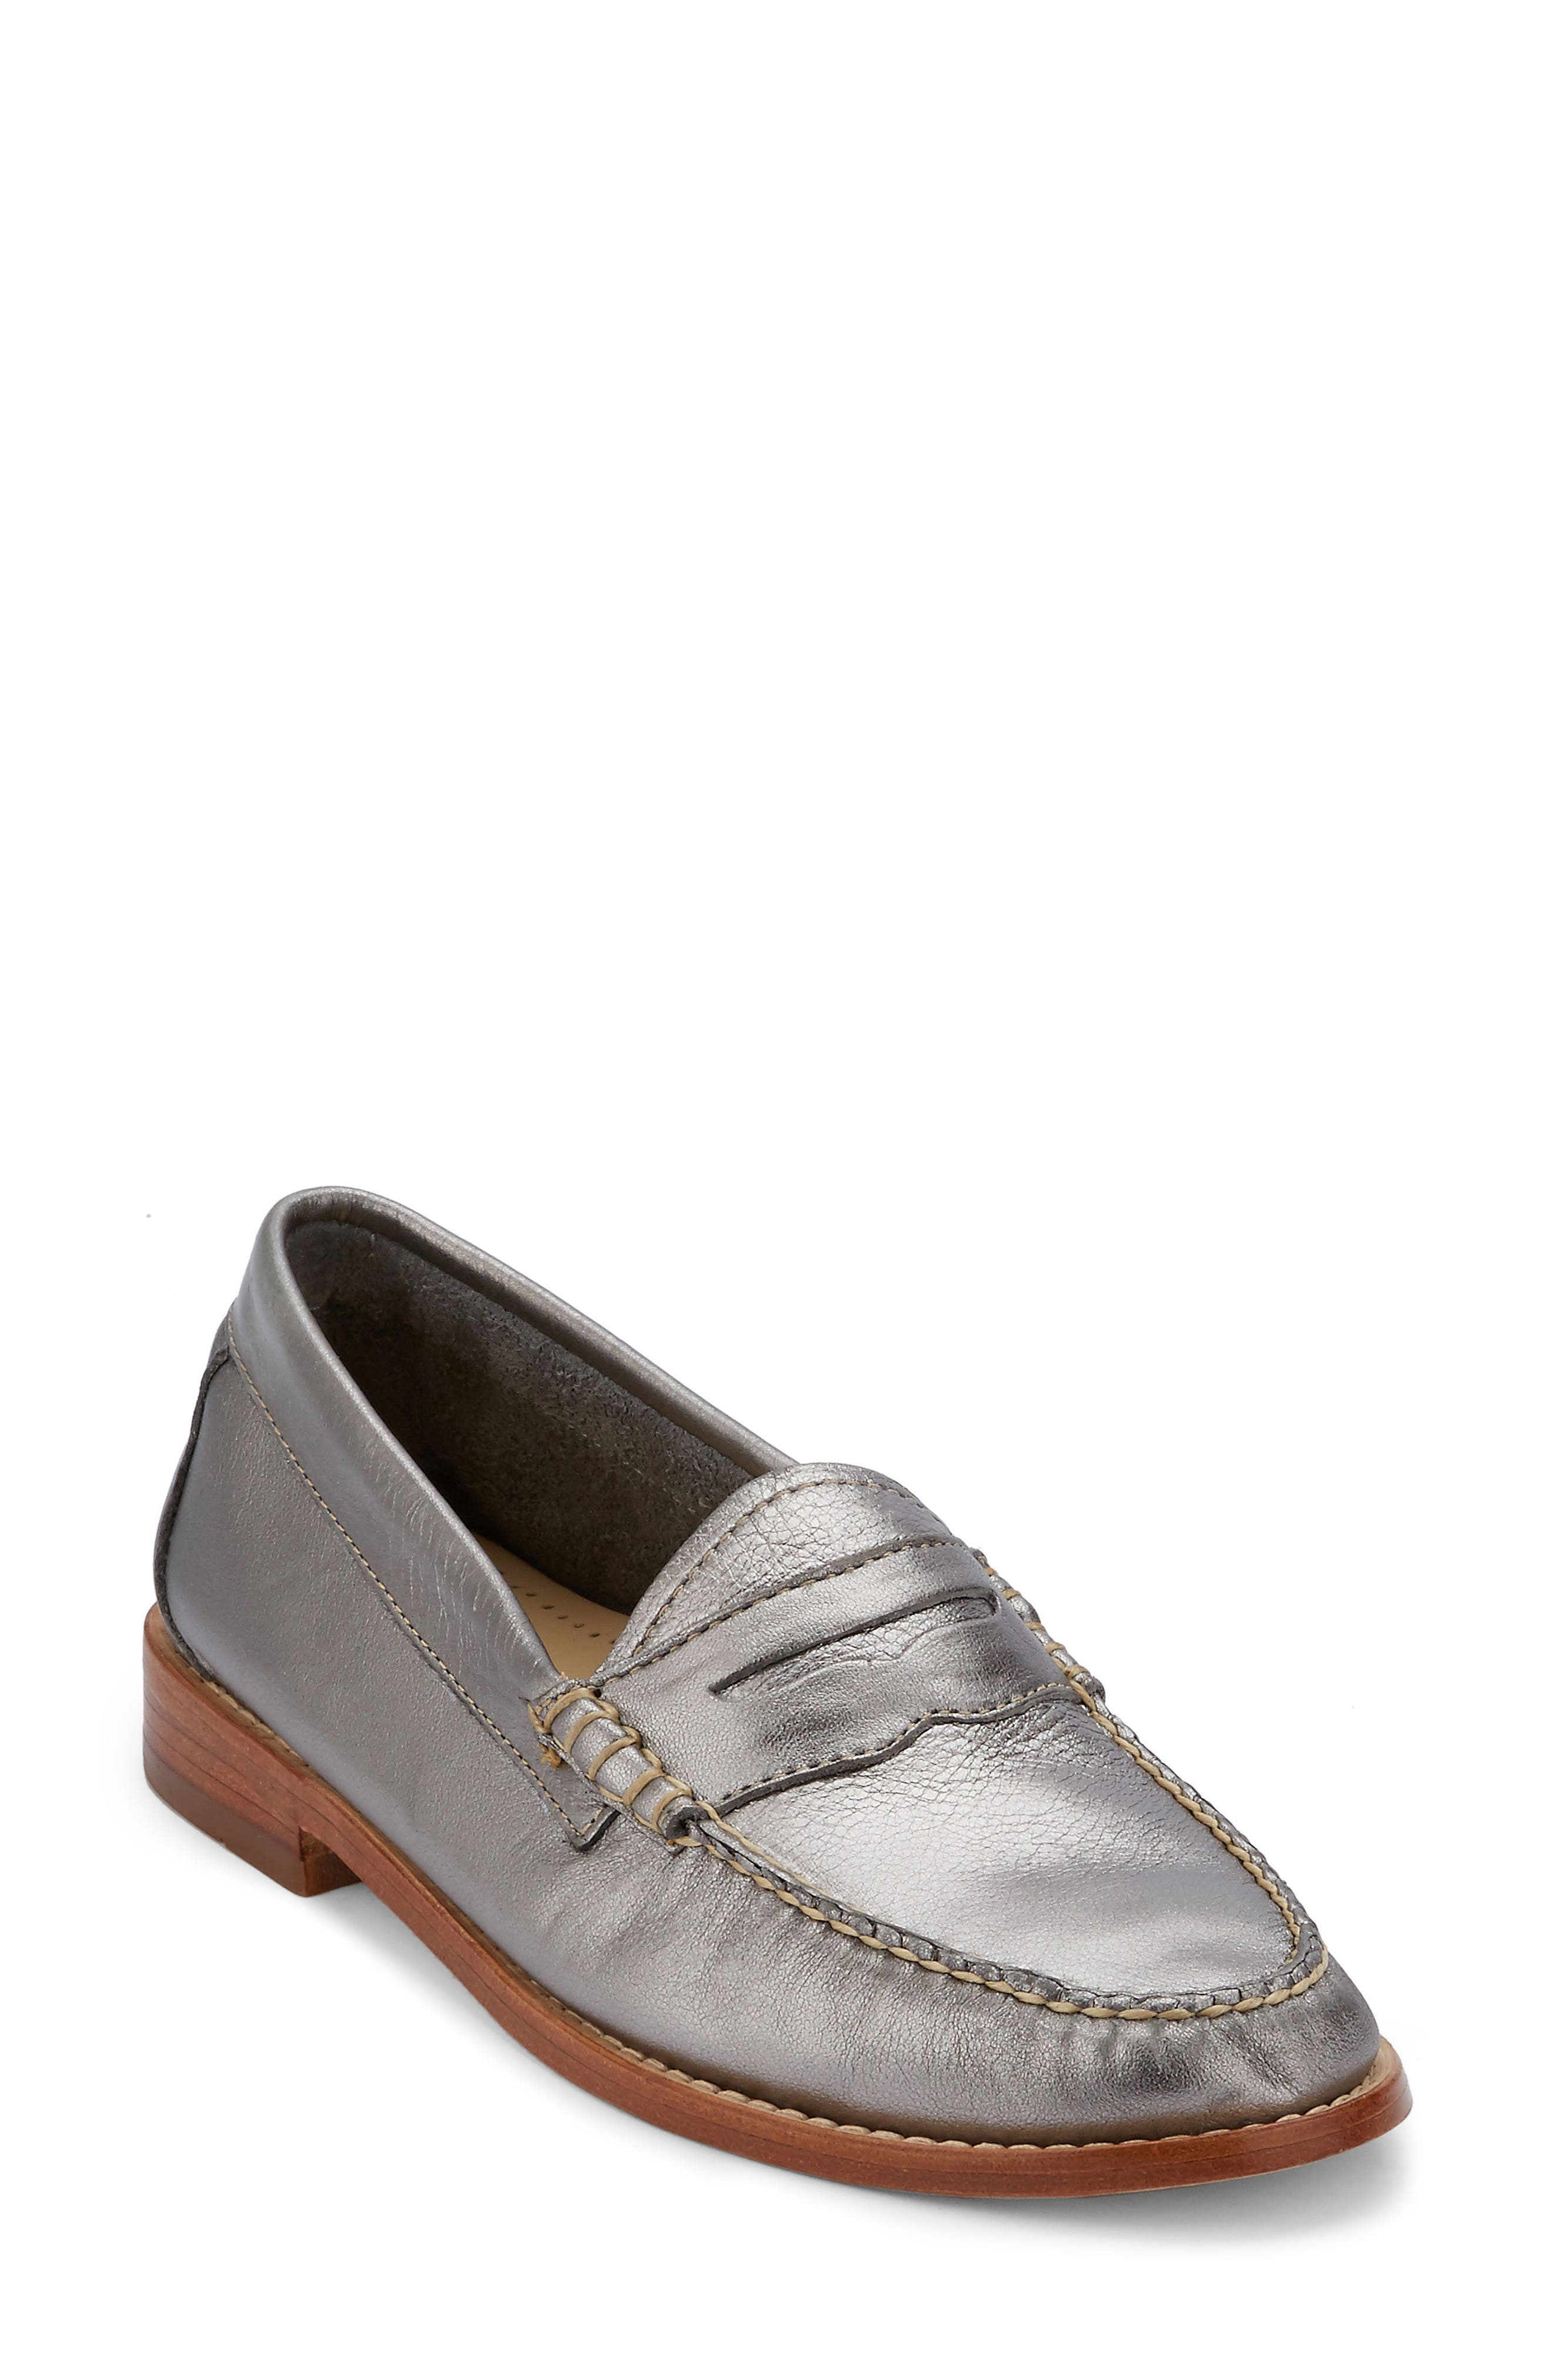 'Whitney' Loafer,                             Main thumbnail 27, color,